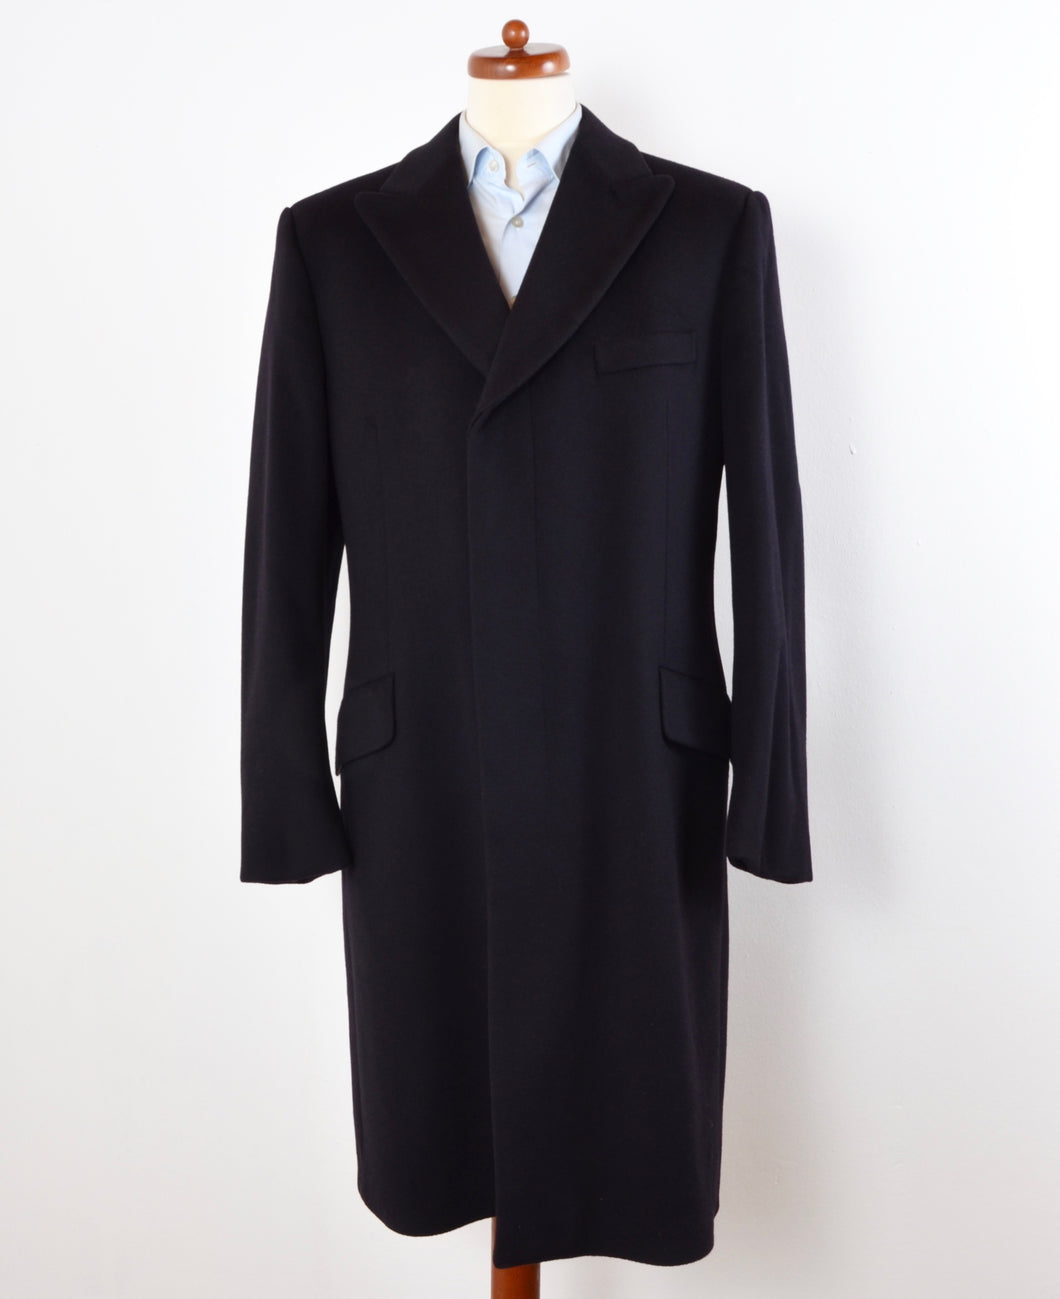 PKZ Zürich Crombie Wool Peaked Label  Overcoat Size 52 - Midnight Blue